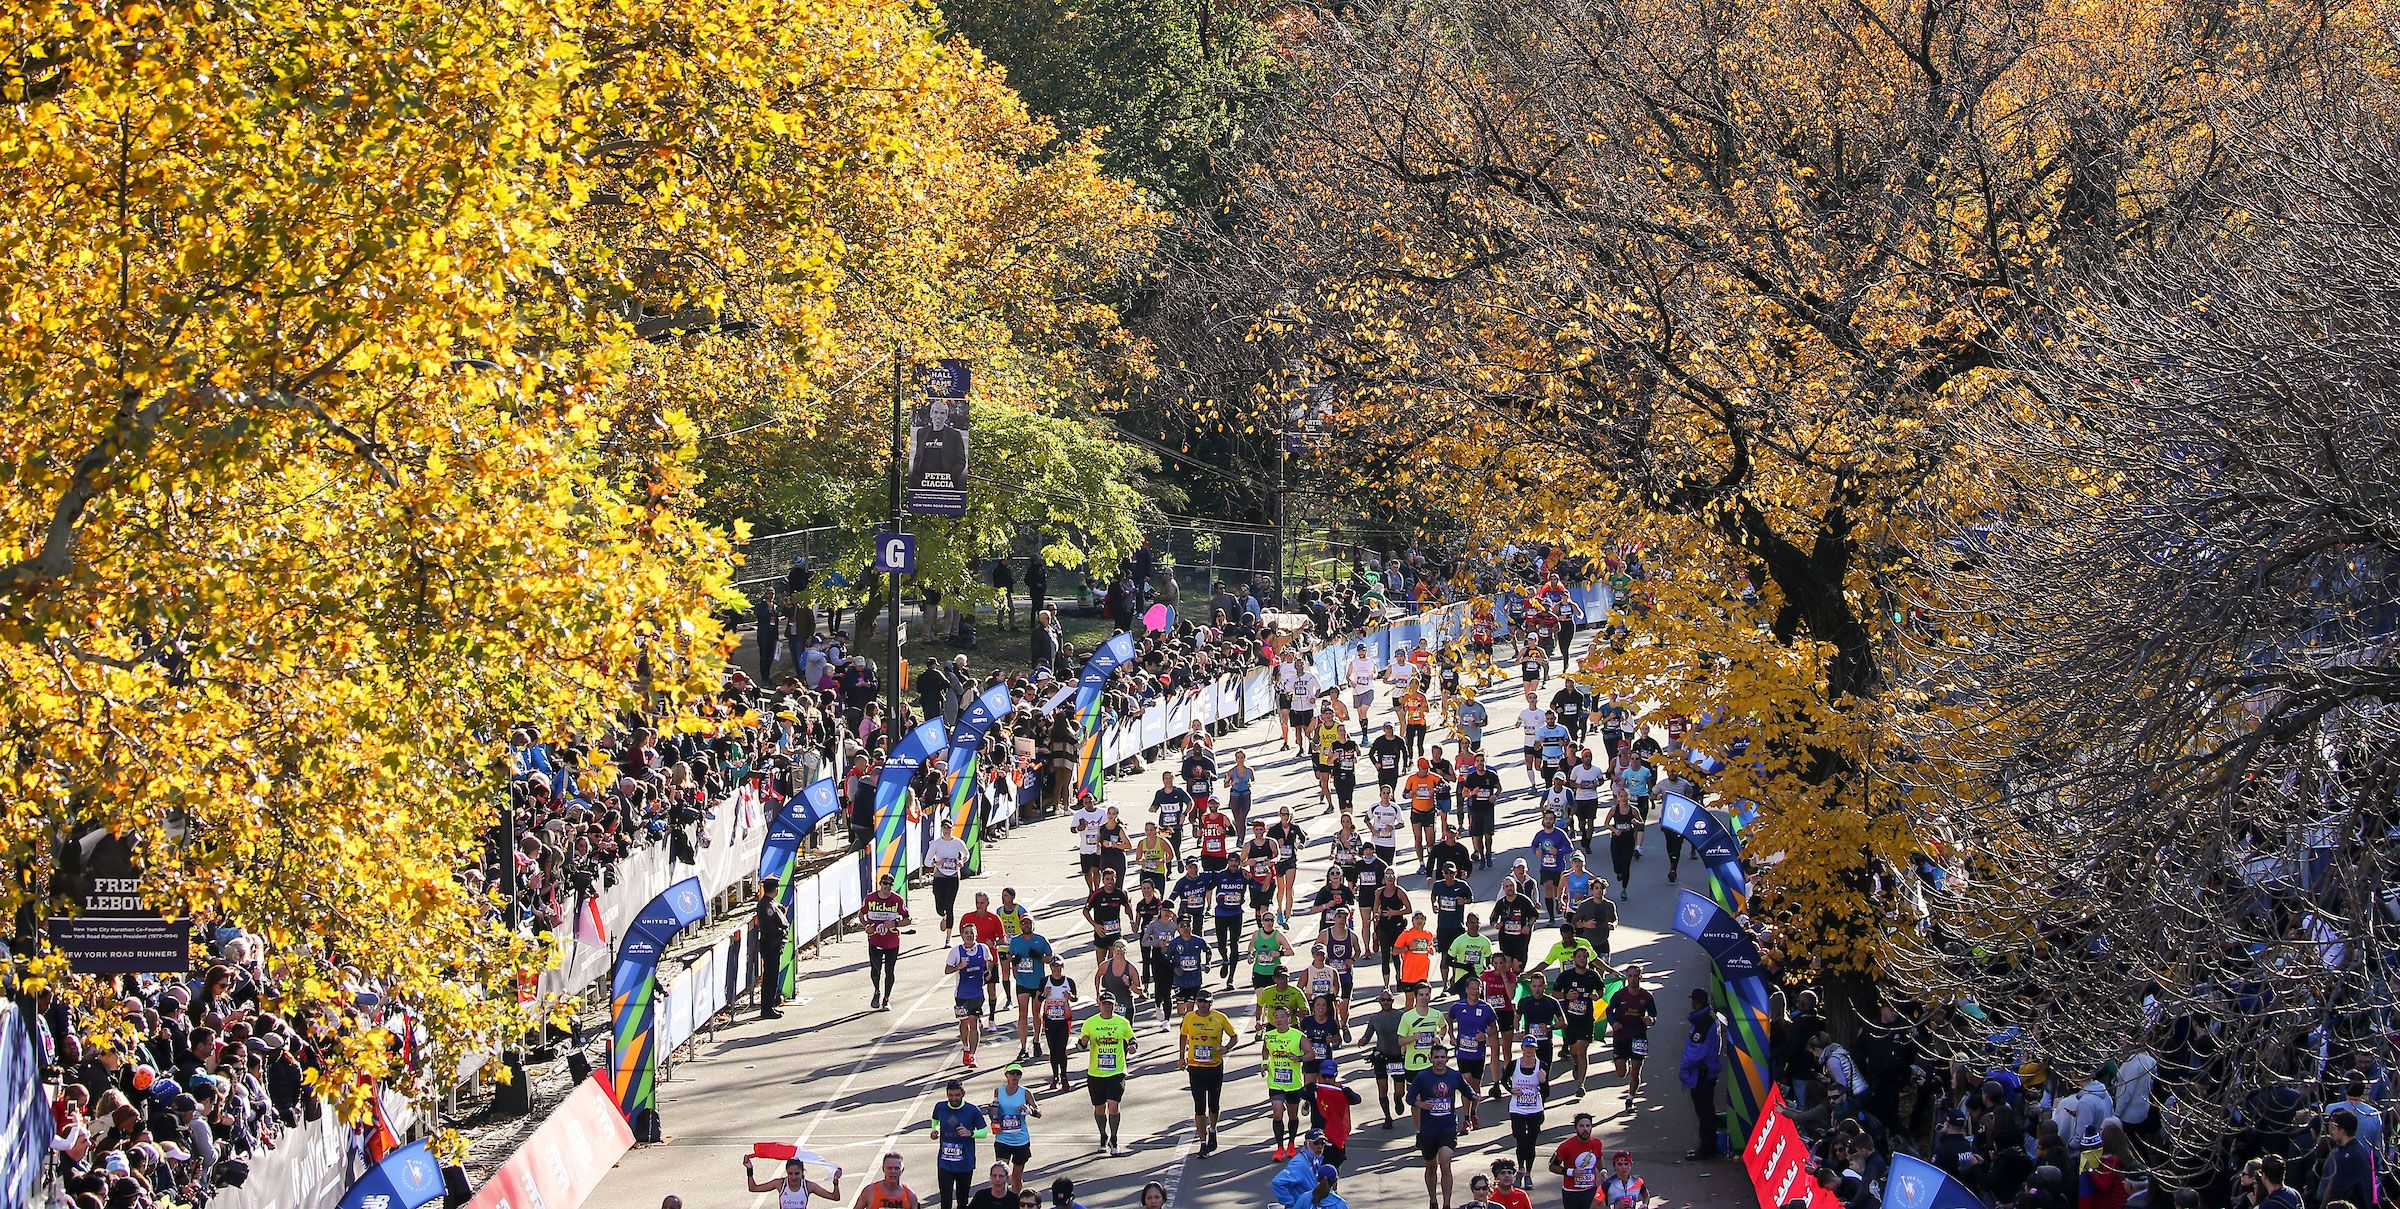 How to Get Into the 2019 New York City Marathon | NYC Marathon 2019